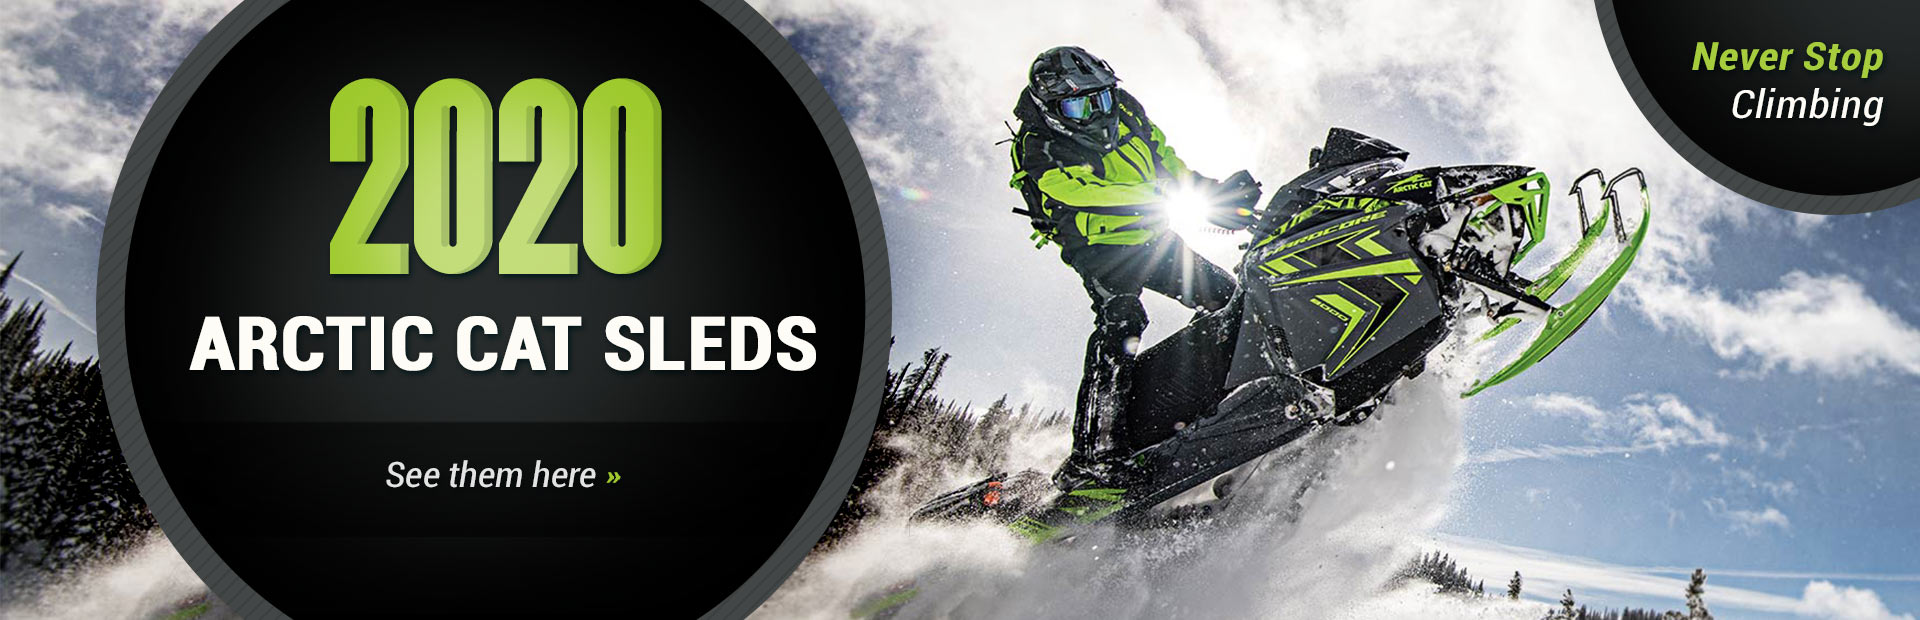 Never Stop Climbing. 2020 Arctic Cat sleds: Click here to view our models.